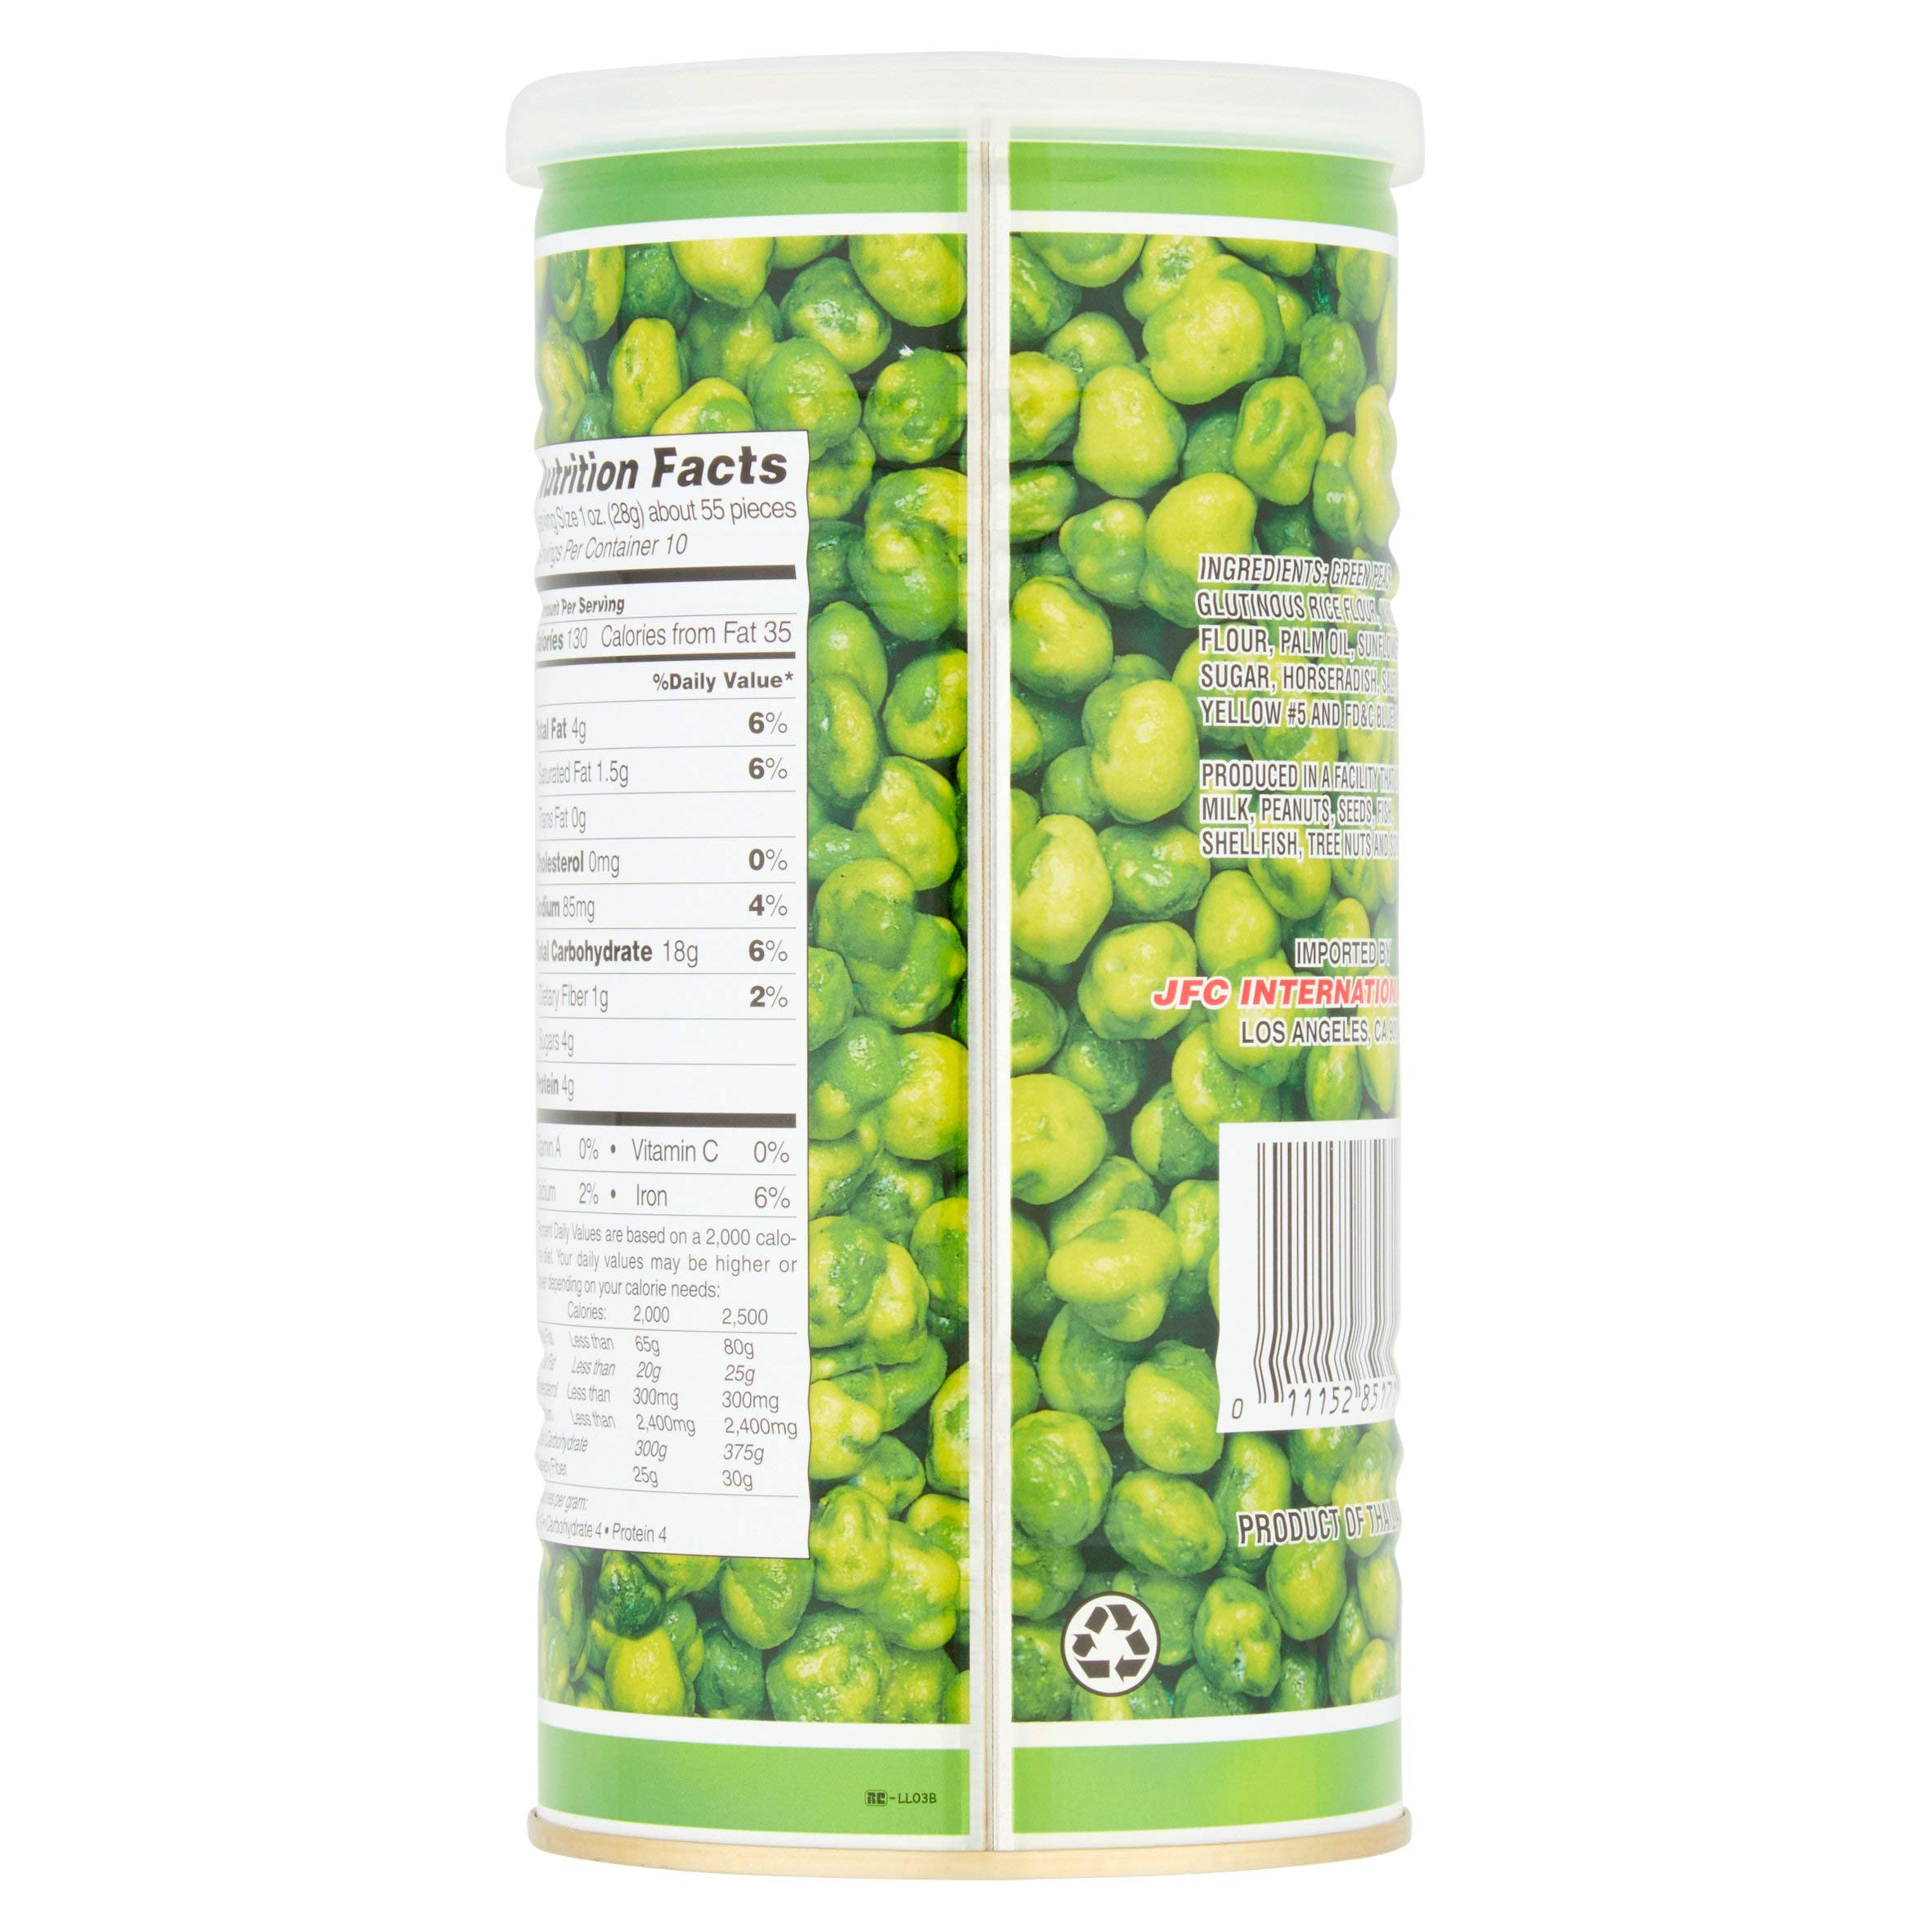 Hapi Snacks Hot Wasabi Peas 9.90oz - 3 Pack by HAPI (Image #4)